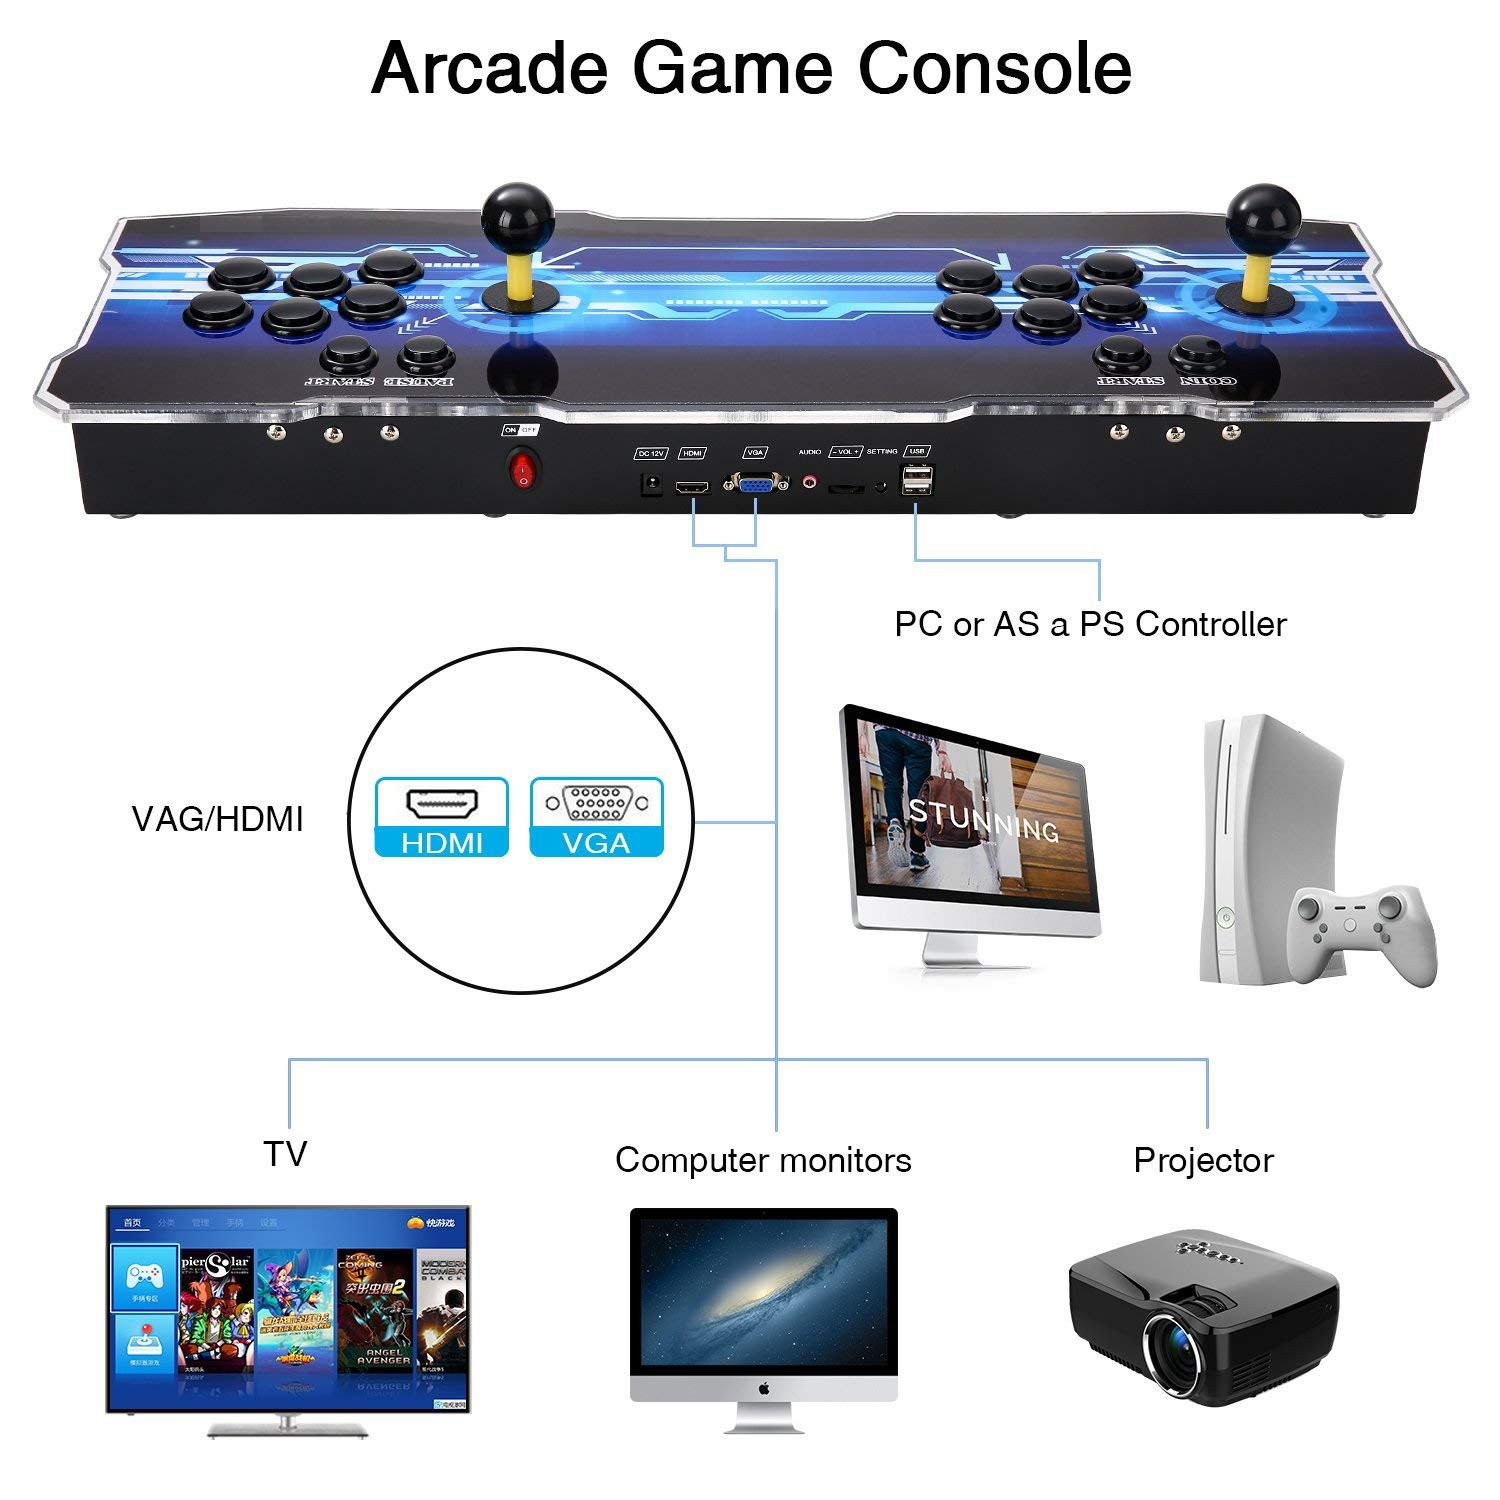 MYMIQEY 3D Pandora Key 7 Arcade Game Console | 2177 Retro HD Games | Full HD (1920x1080) Video | 2 Player Game Controls | Support Multiplayer Online | Add More Games | HDMI/VGA/USB/AUX Audio Output by MYMIQEY (Image #3)